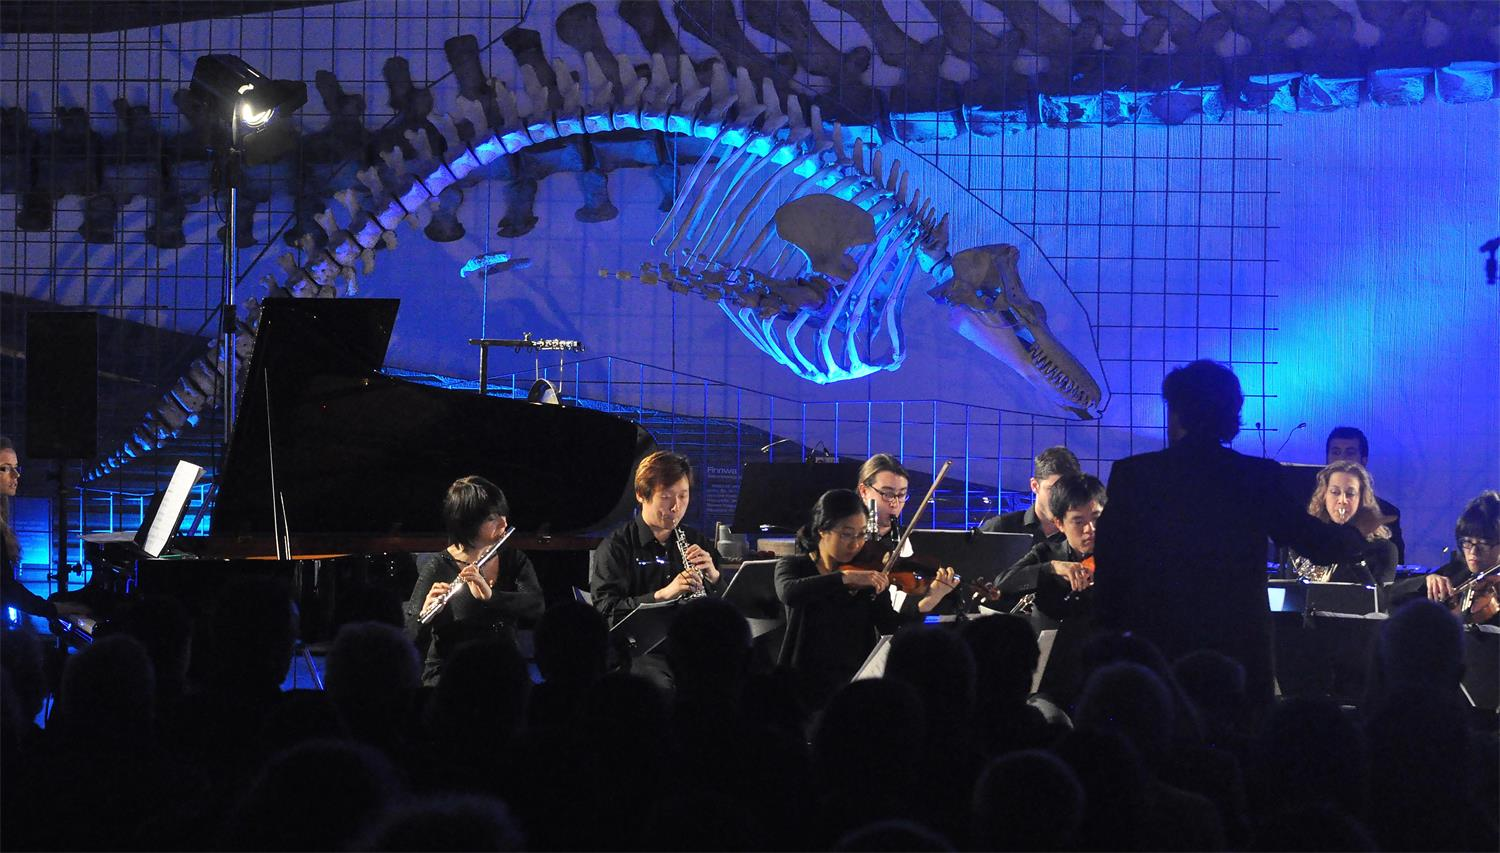 Concert series Bestiarium at Senckenberg Museum, in cooperation with HfMDK Frankfurt (c) Björn Hadem